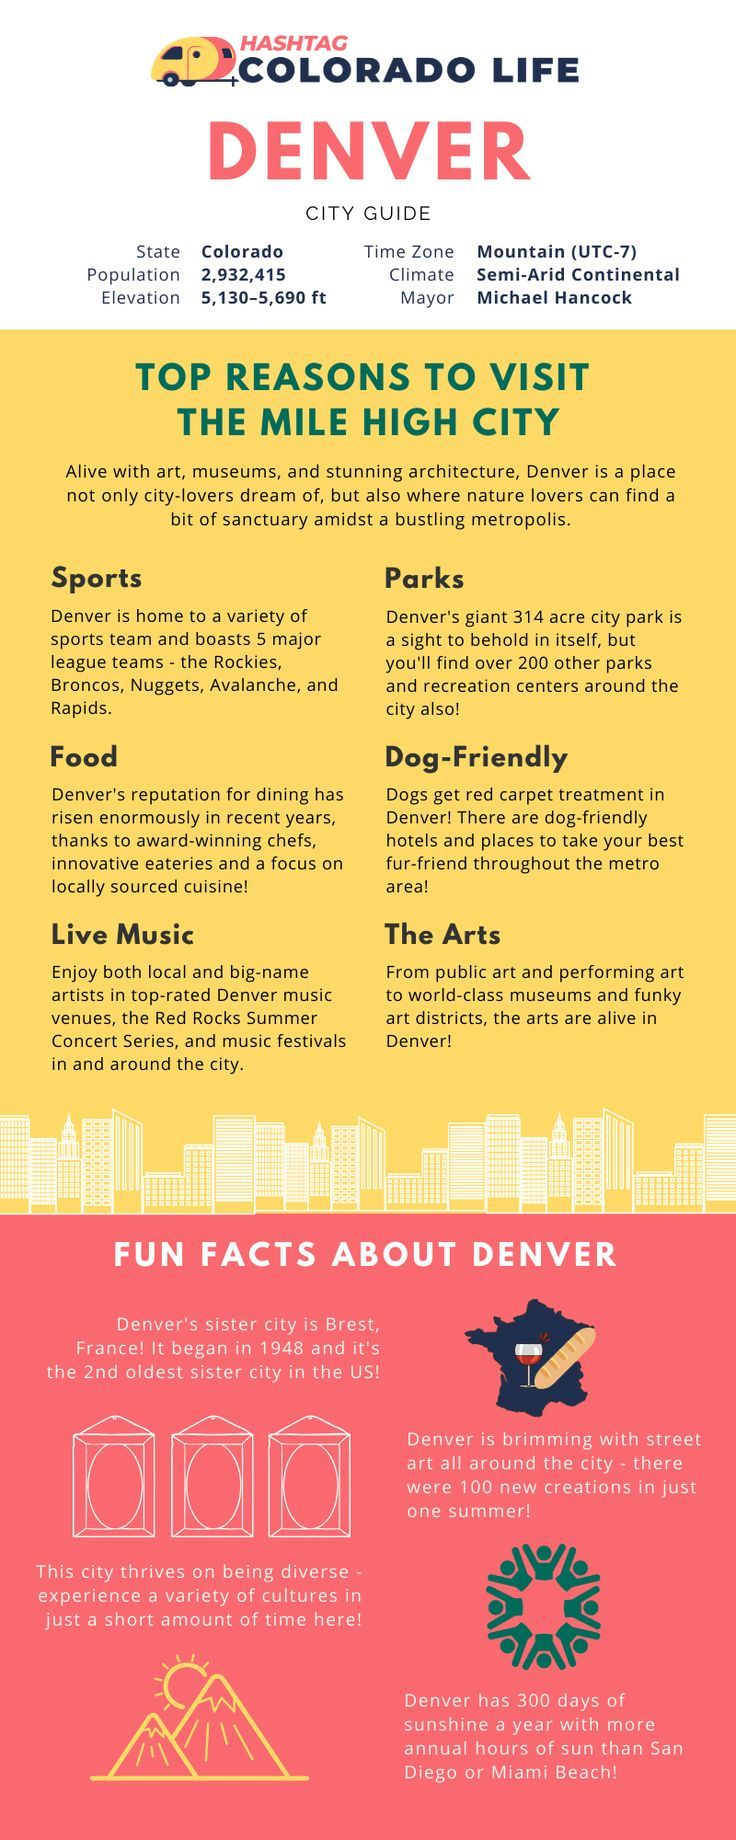 48 Hours In Denver Local Favorites And Things To Do This Weekend Colorado Travel Guide Colorado Travel Things To Do